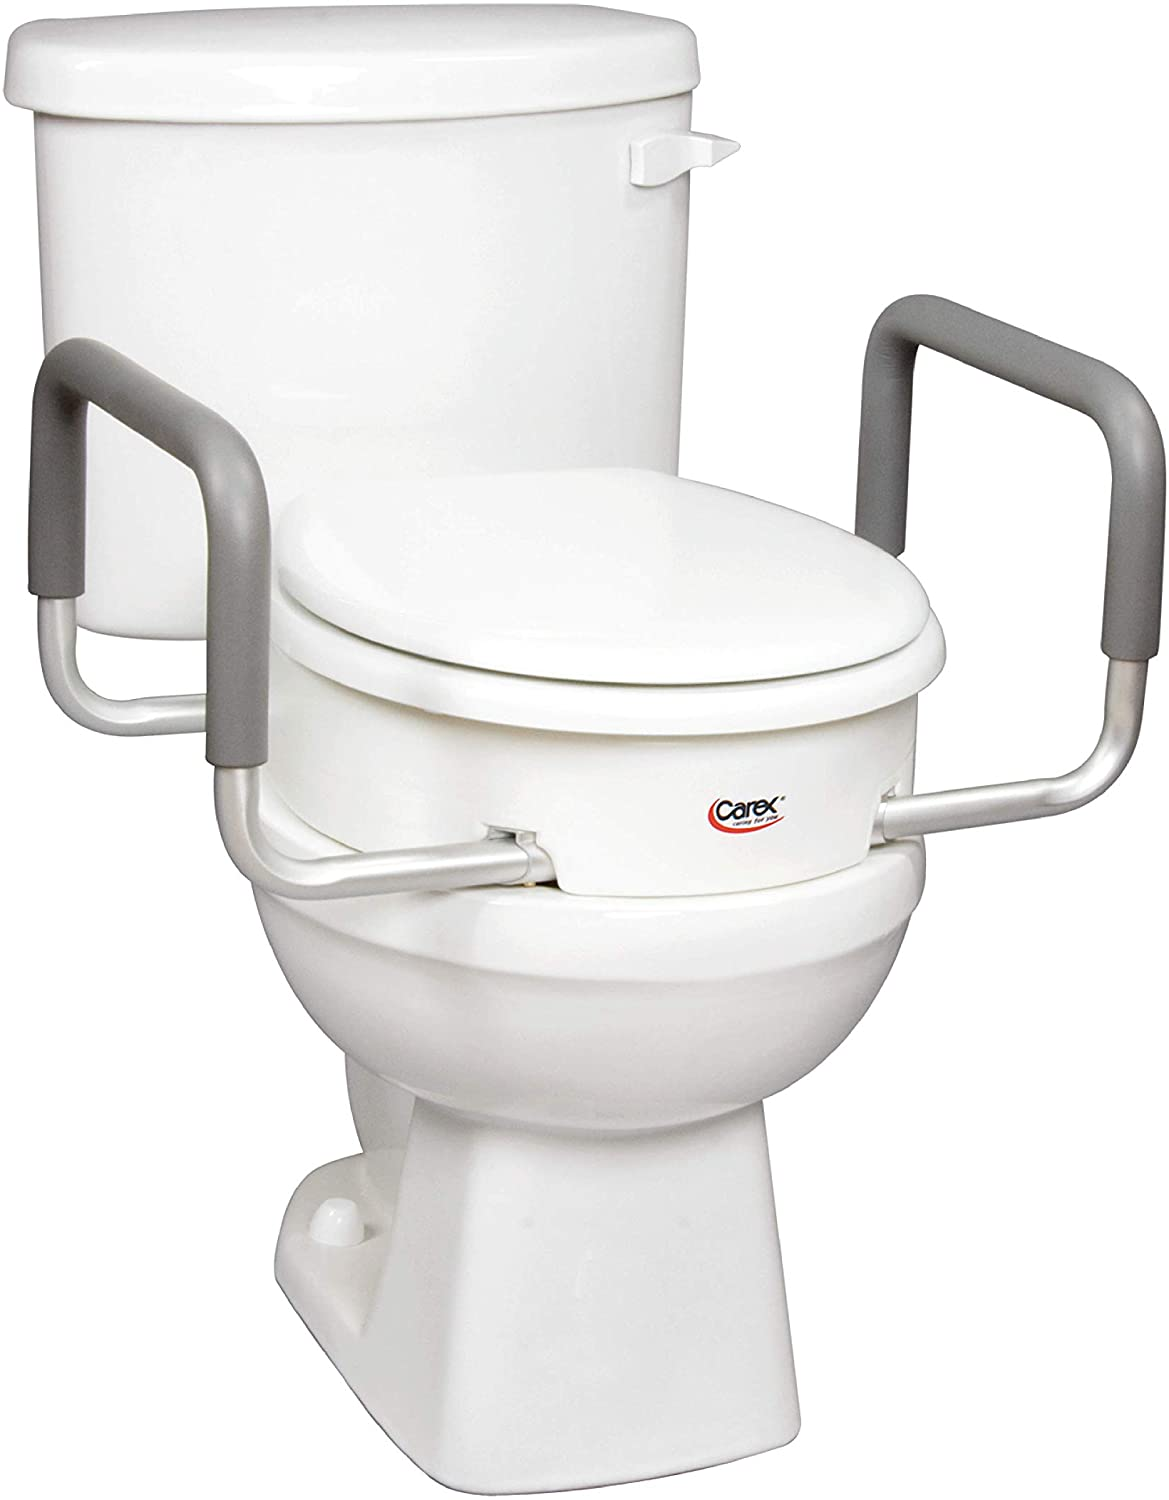 Carex Health Brands 3.5 Inch Raised Toilet Seat with Arms